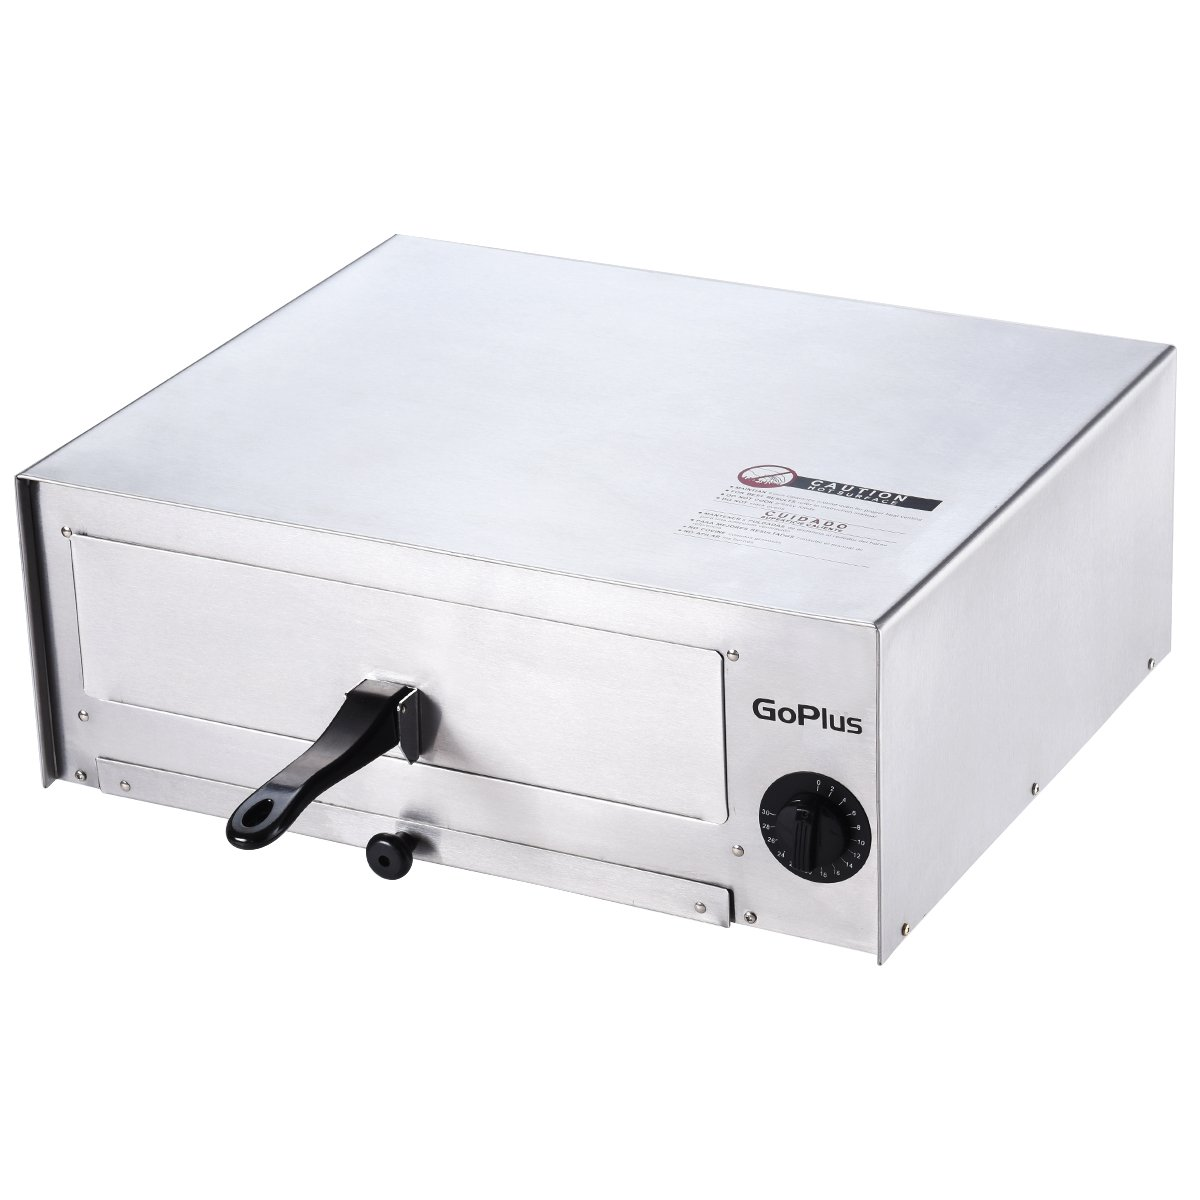 Goplus Pizza Oven, Stainless Steel Pizza Maker Machine, Pizza Baker W/Snack Pan, Snack Maker, Counter Top, for Commercial and Home by Goplus (Image #7)